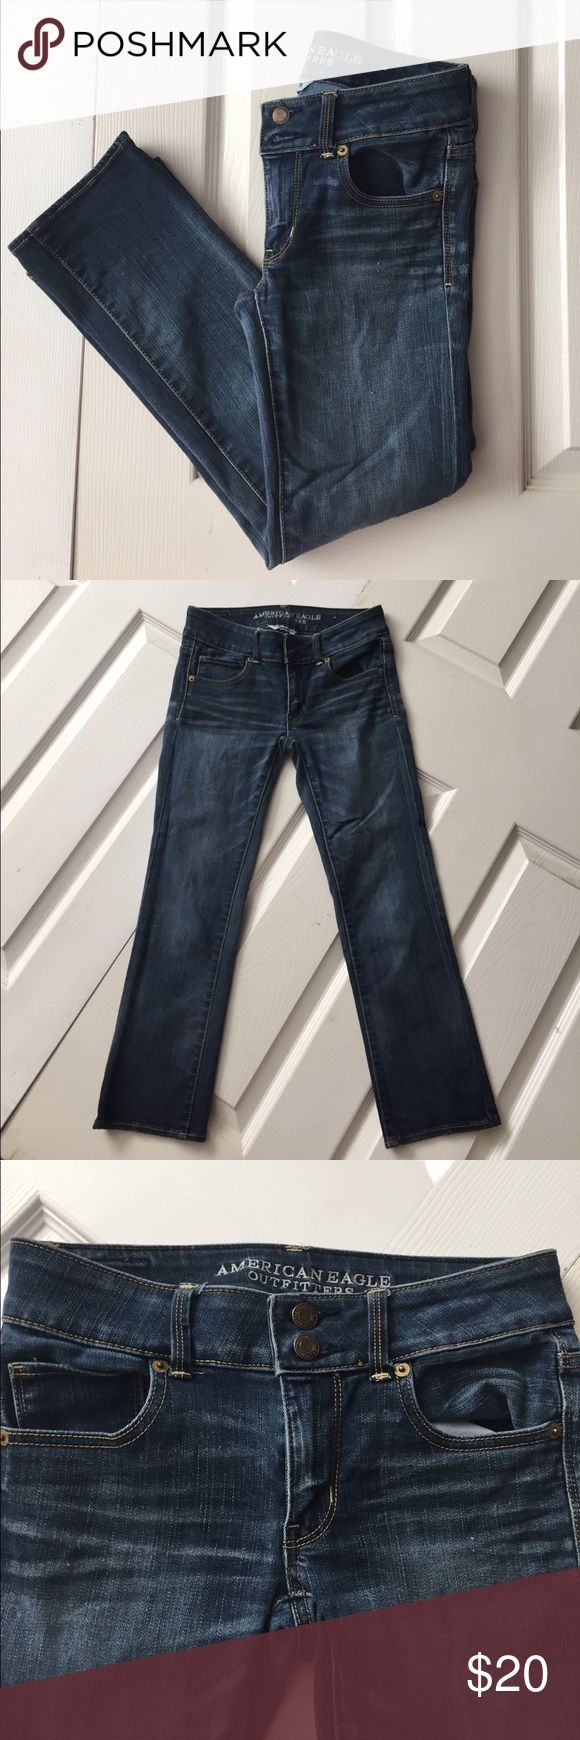 """AE Artist Crop Super Stretch Size 0 Regular. American Eagle Artist Crop Super Stretch Jeans. Inseam 24"""". Rise 7"""". Preowned and in good condition. Please view all 8 photos. American Eagle Outfitters Jeans Ankle & Cropped"""